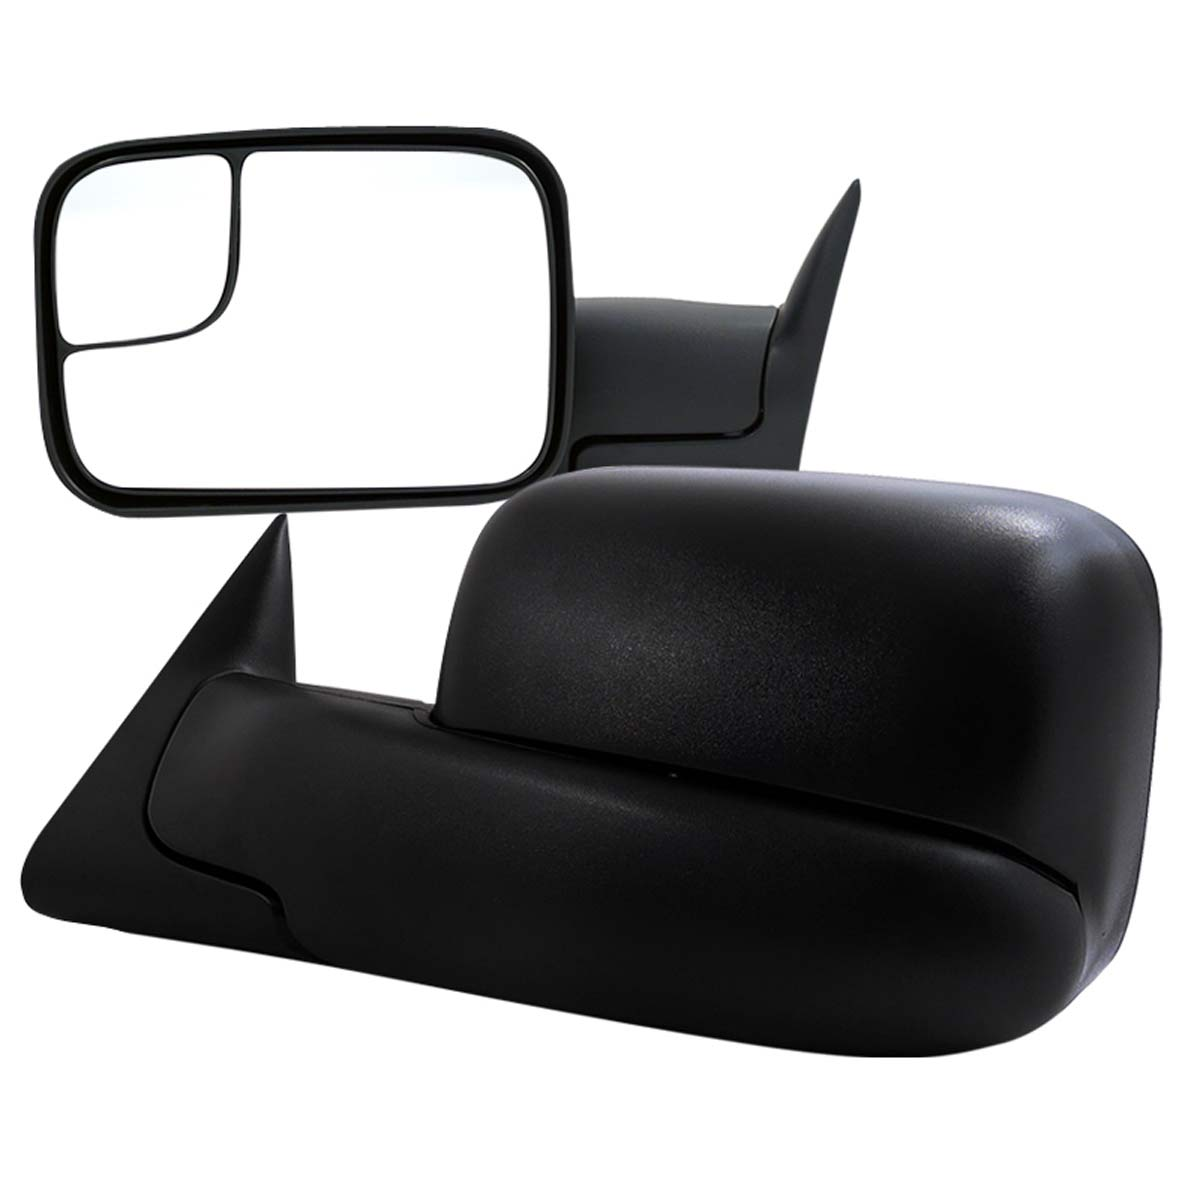 05 13 Toyota Tacoma Power Adjust Telescoping Towing Mirrors Pair